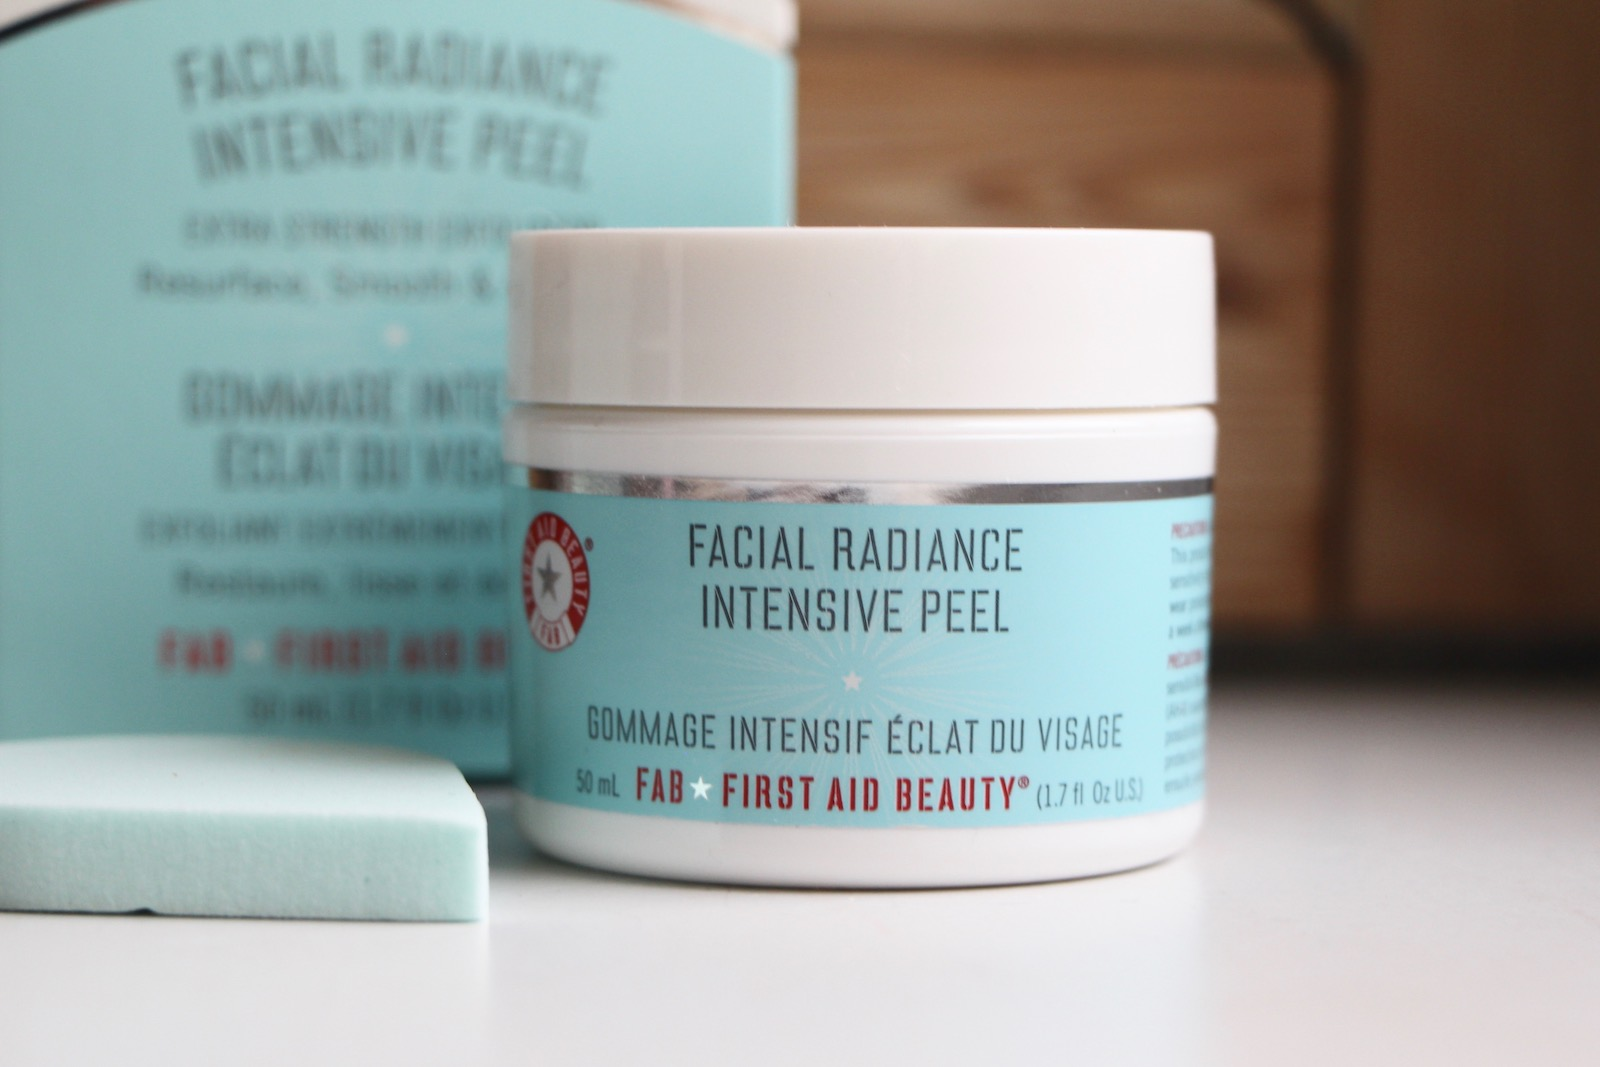 Face Off: The Facial Radiance Intensive Peel